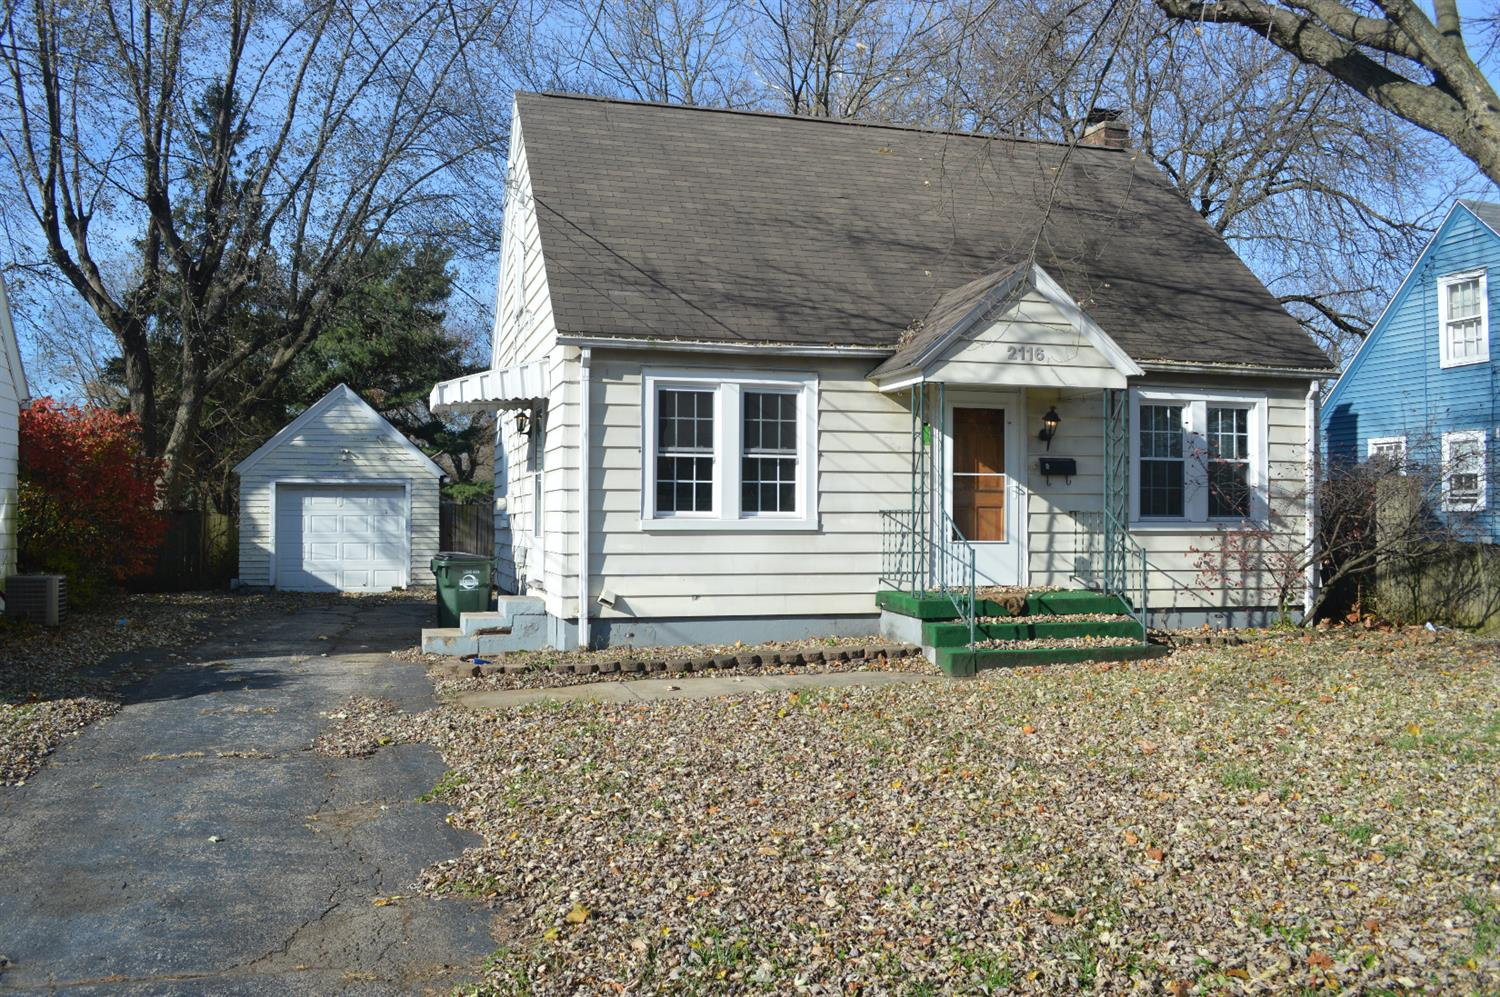 2116 Lamberton St Middletown South Oh 45044 Listing